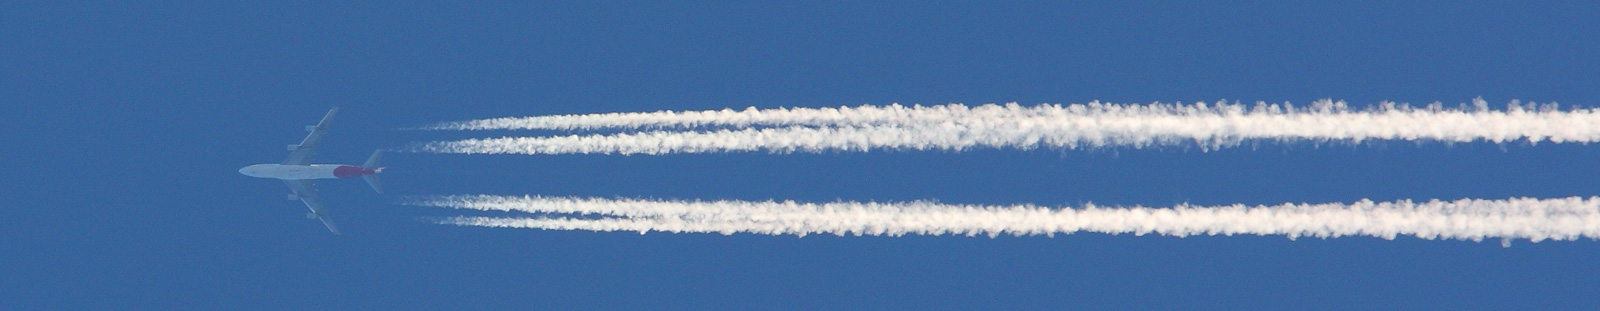 Plane leaving contrails behind. Note how the vapor lines up exactly with the engines.